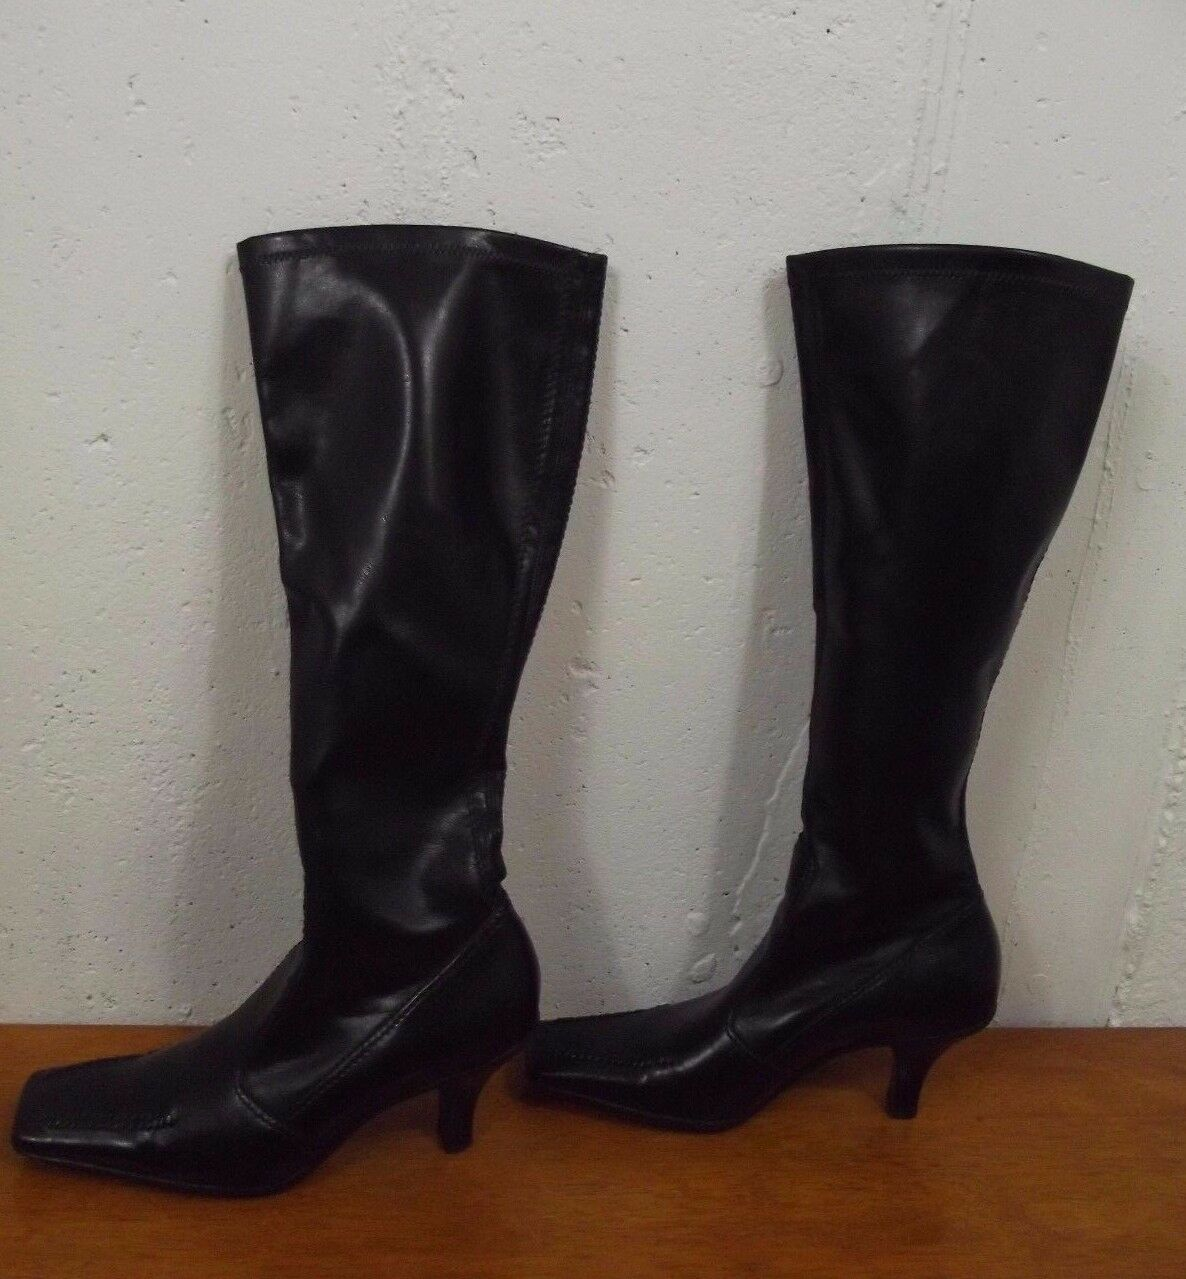 FRANCO SARTO Womens 6 M Black Faux Leather Knee High Pull On Misses Boots Shoes